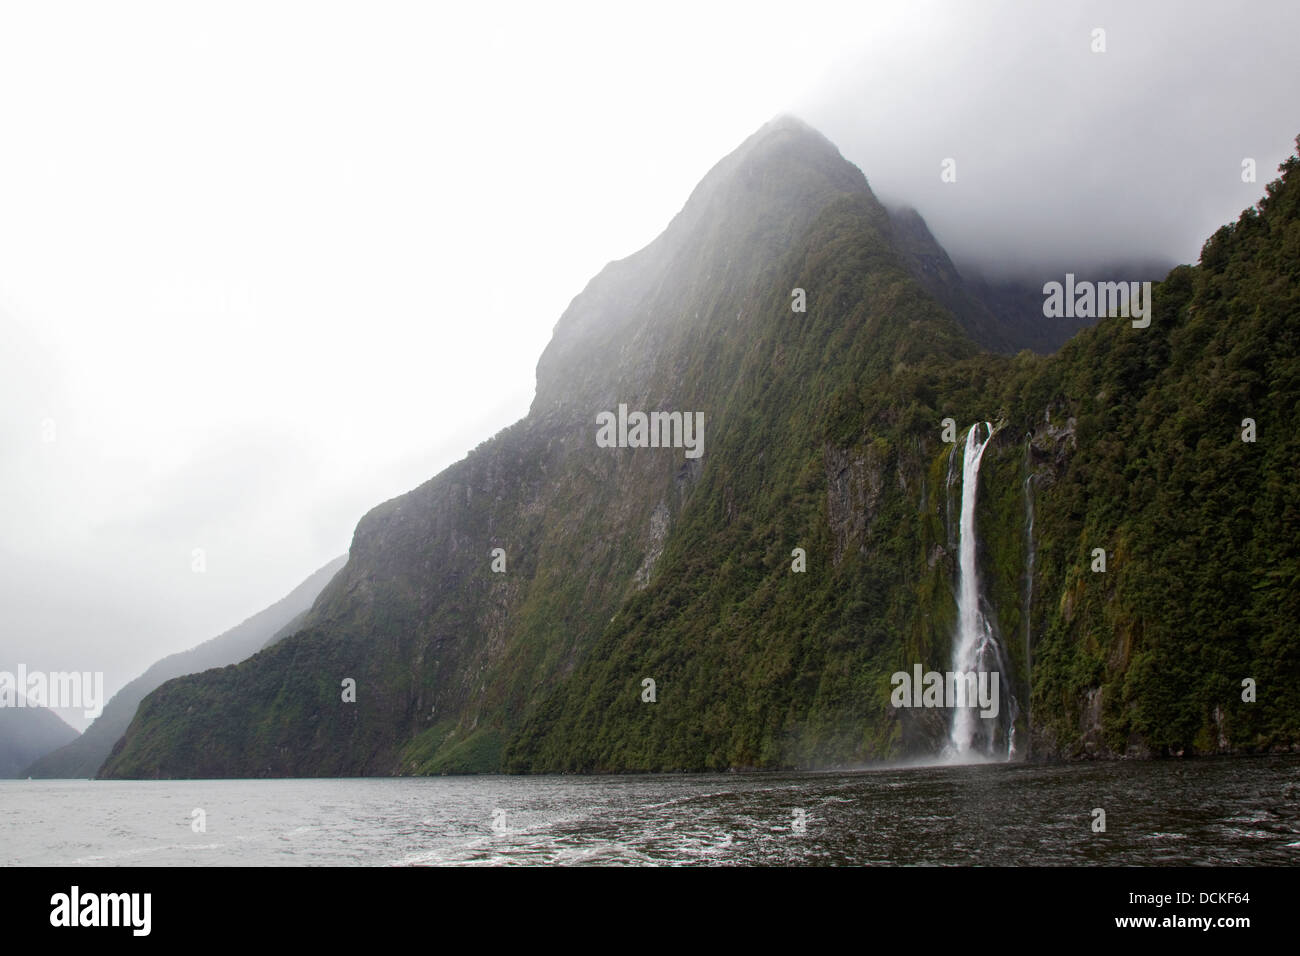 Misty fjords of Milford Sound, New Zealand - Stock Image